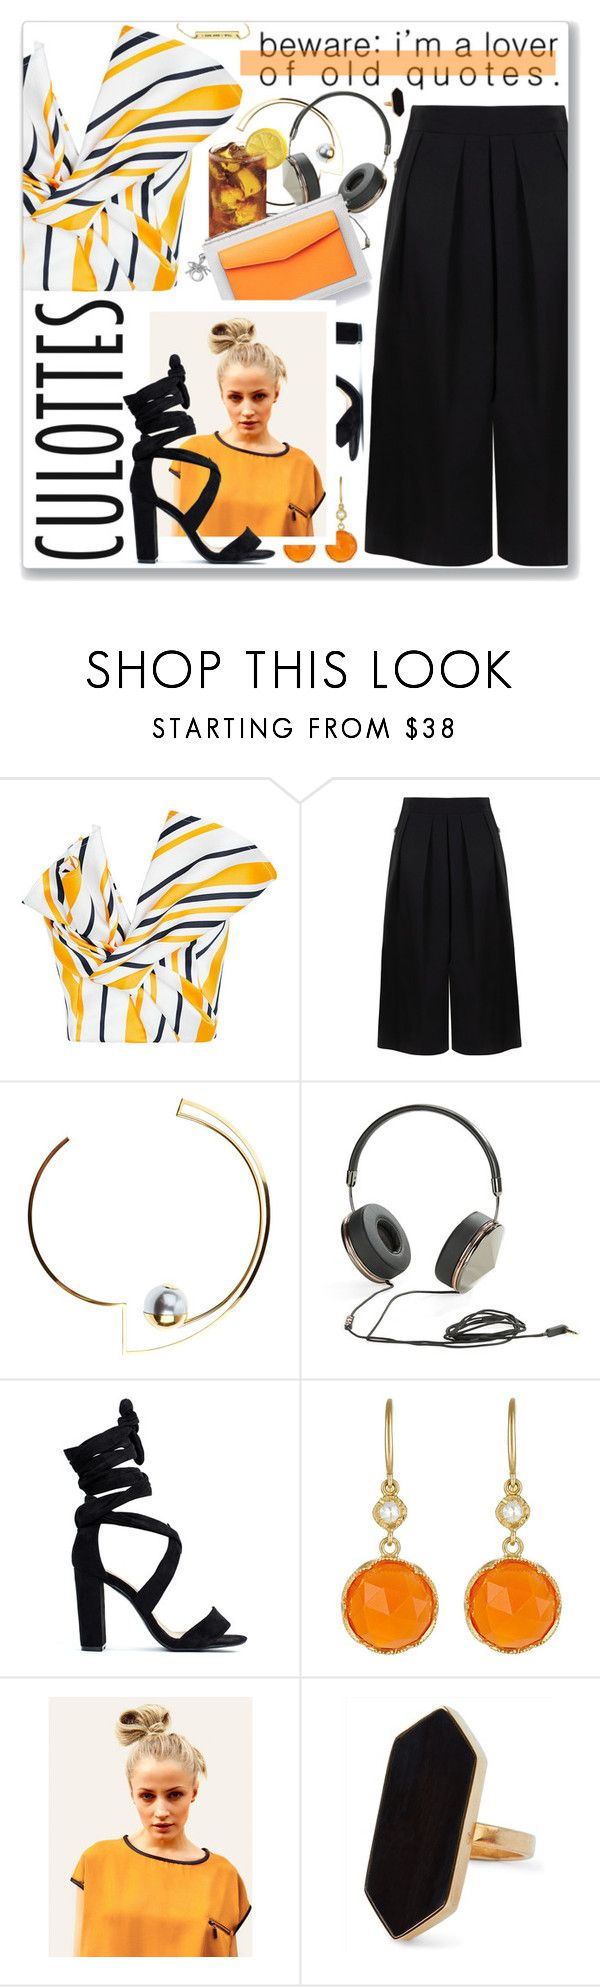 """""""Kill Em With Kindness, Selena Gomez"""" by blendasantos ❤ liked on Polyvore featuring Maticevski, BIG PARK, LeiVanKash, Frends, Christian Dior, Irene Neuwirth, Hershesons, Jaeger, TrickyTrend and culottes"""